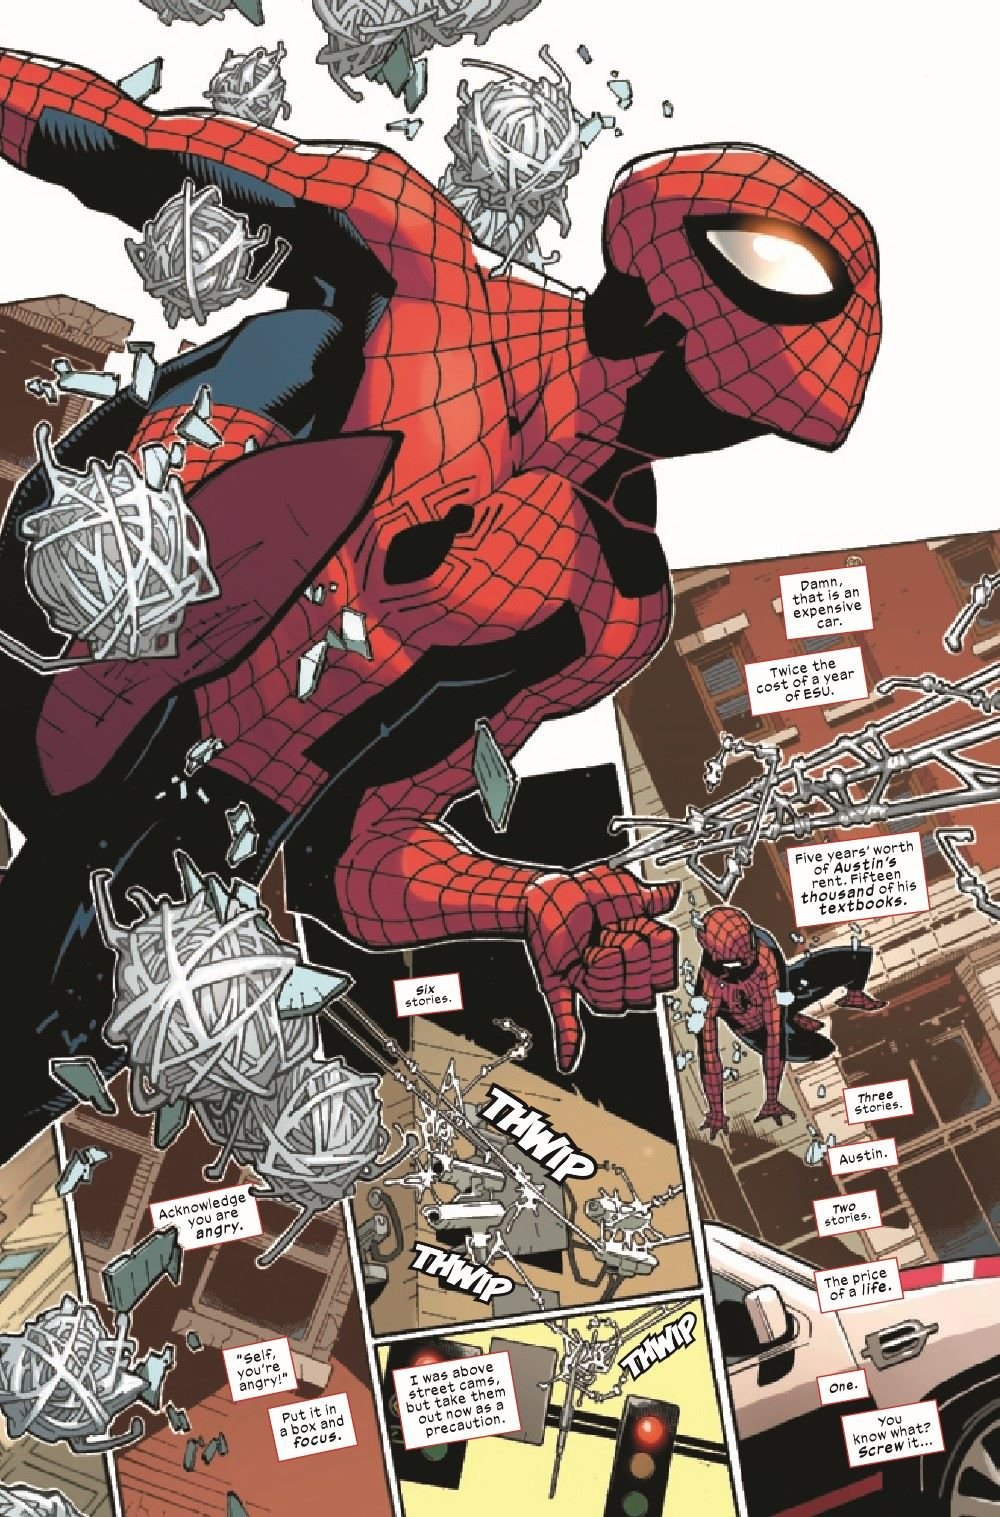 NONSTOPSM2021001_Preview-4 ComicList Previews: NON-STOP SPIDER-MAN #1